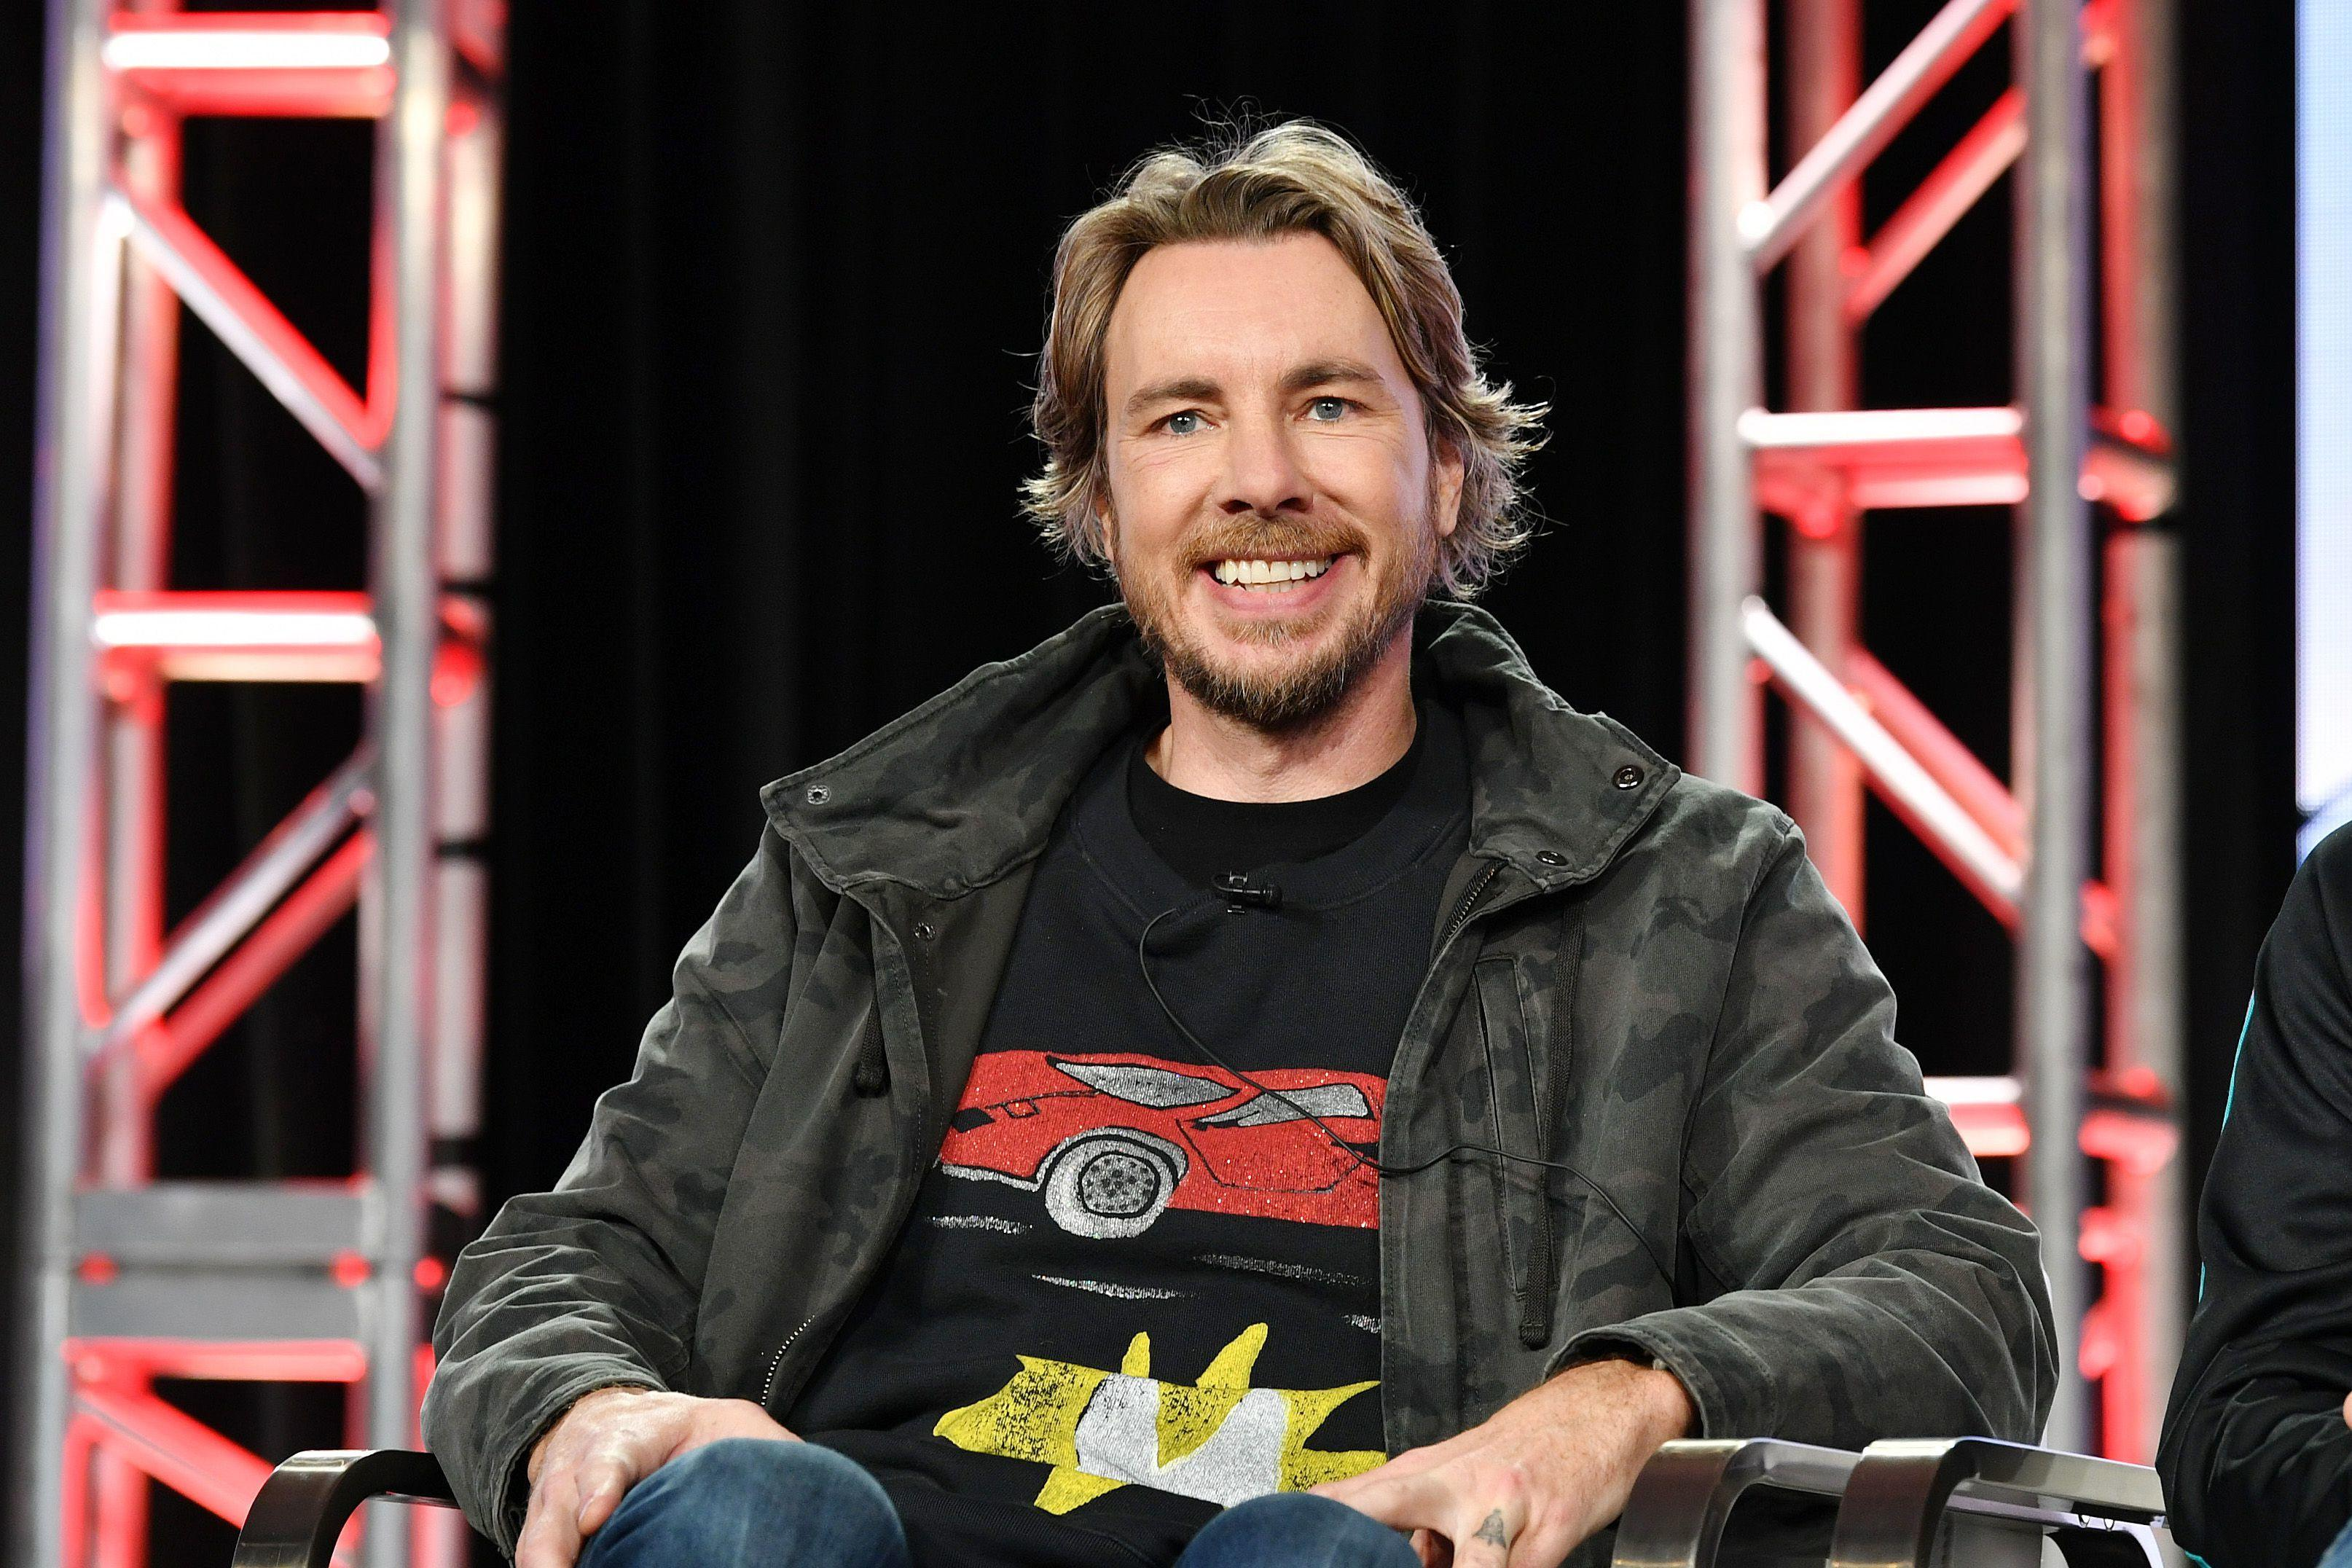 Dax Shepard says he'll need surgery after motorcycle accident: 4 broken ribs, broken clavicle